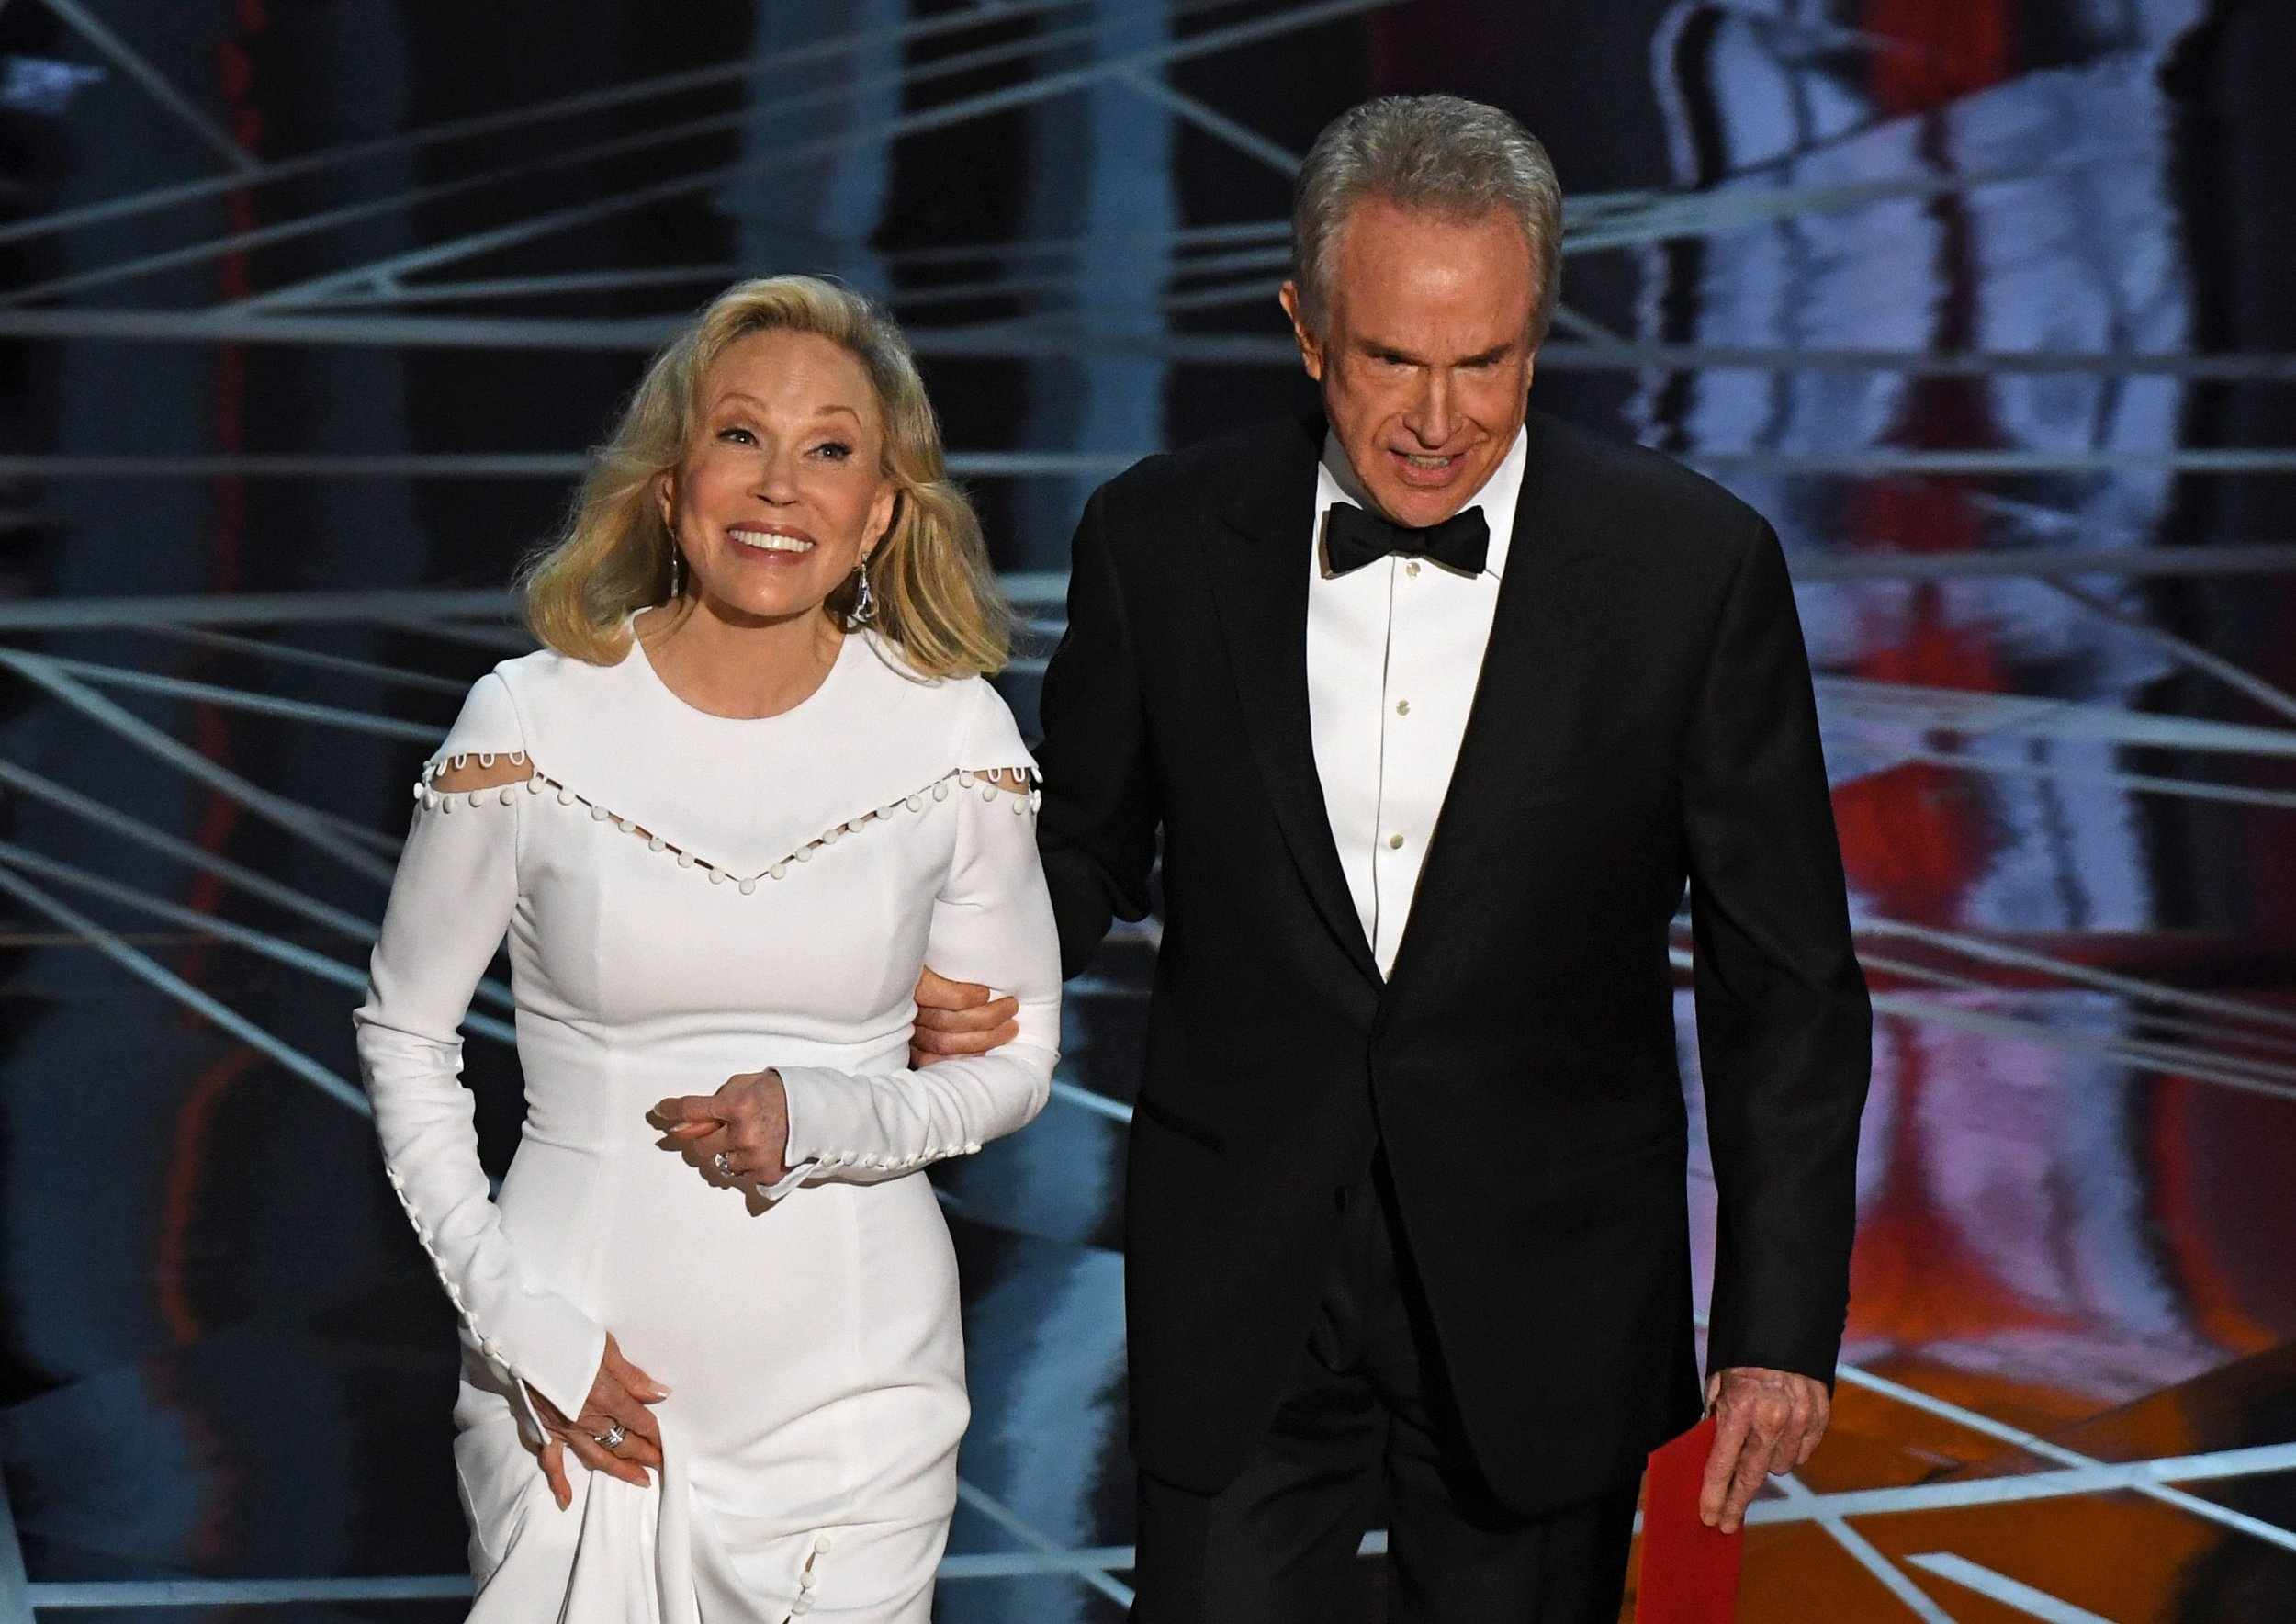 Actress Faye Dunaway and actor Warren Beatty arrive on stage to announce the winner of the Best Movie category at the 89th Oscars on February 26, 2017 in Hollywood, California. / AFP PHOTO / Mark RALSTONMARK RALSTON/AFP/Getty Images